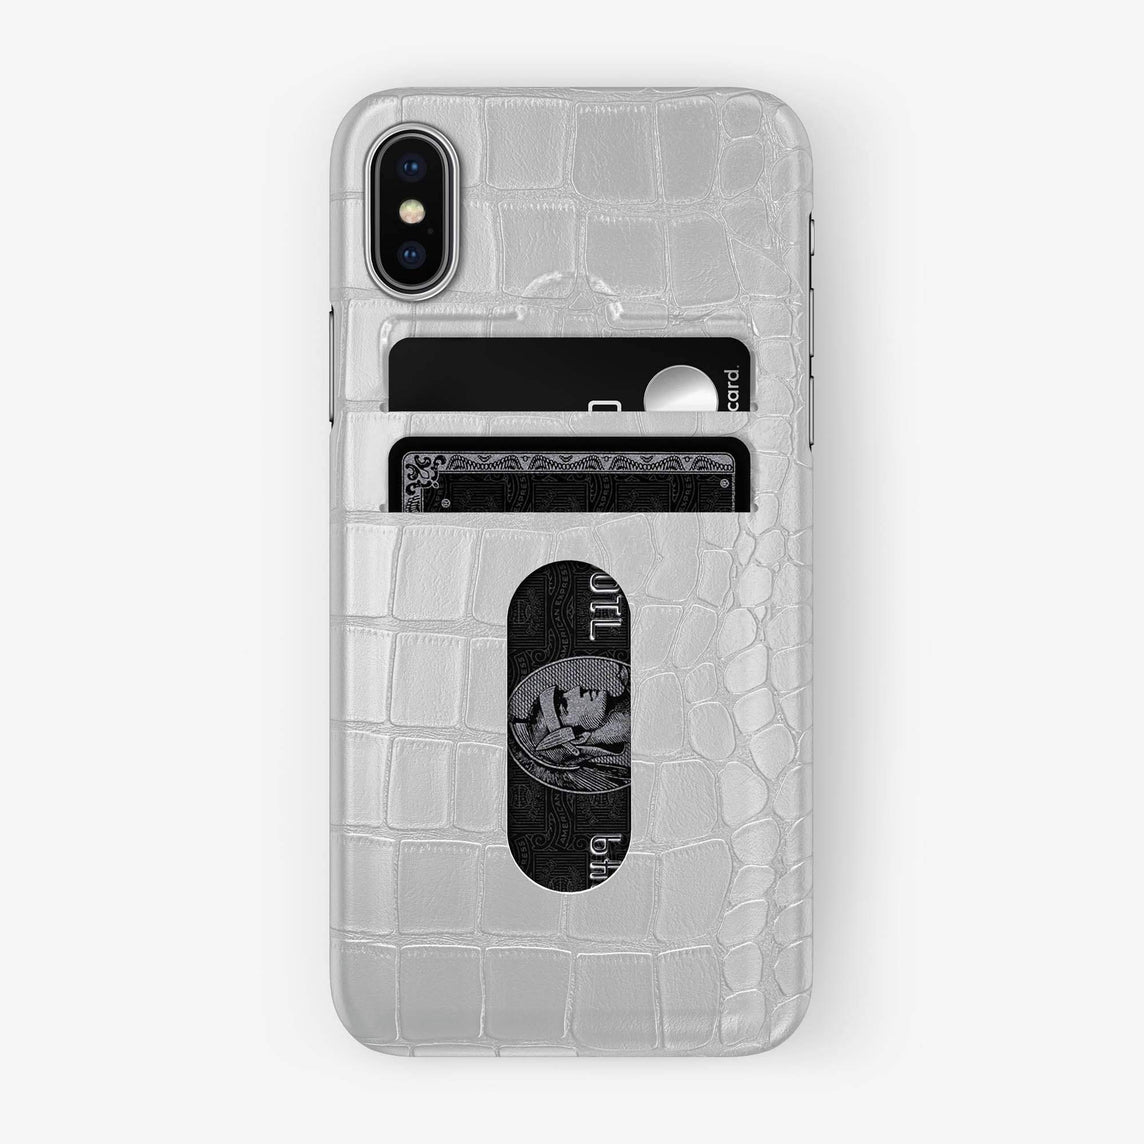 Alligator Card Holder Case iPhone Xs Max | White - Stainless Steel - Hadoro